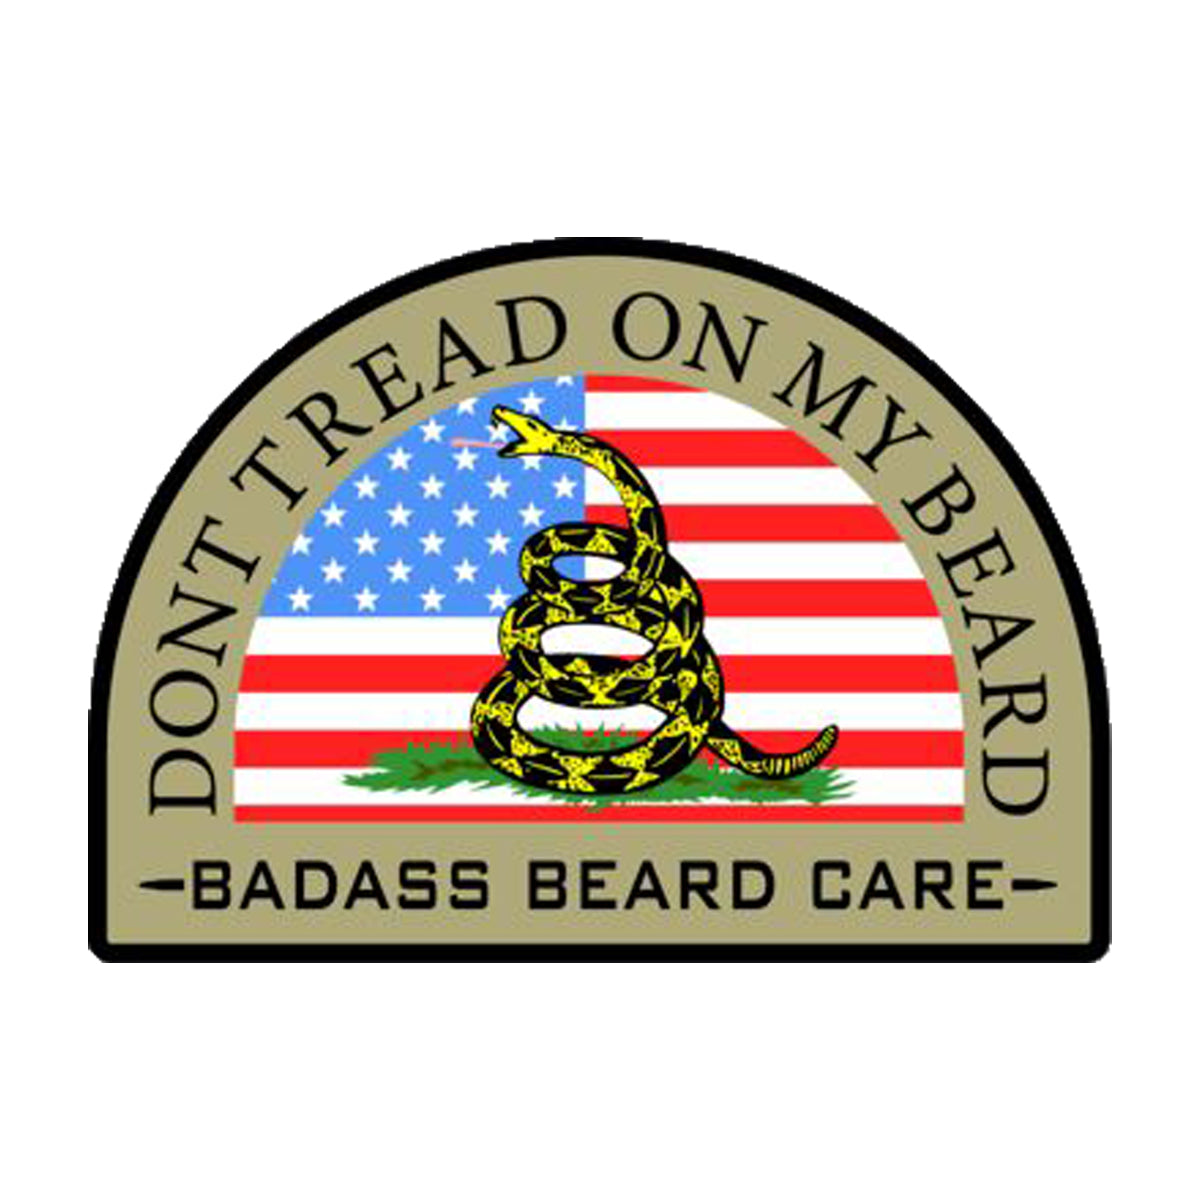 Don't Tread On My Beard Sticker